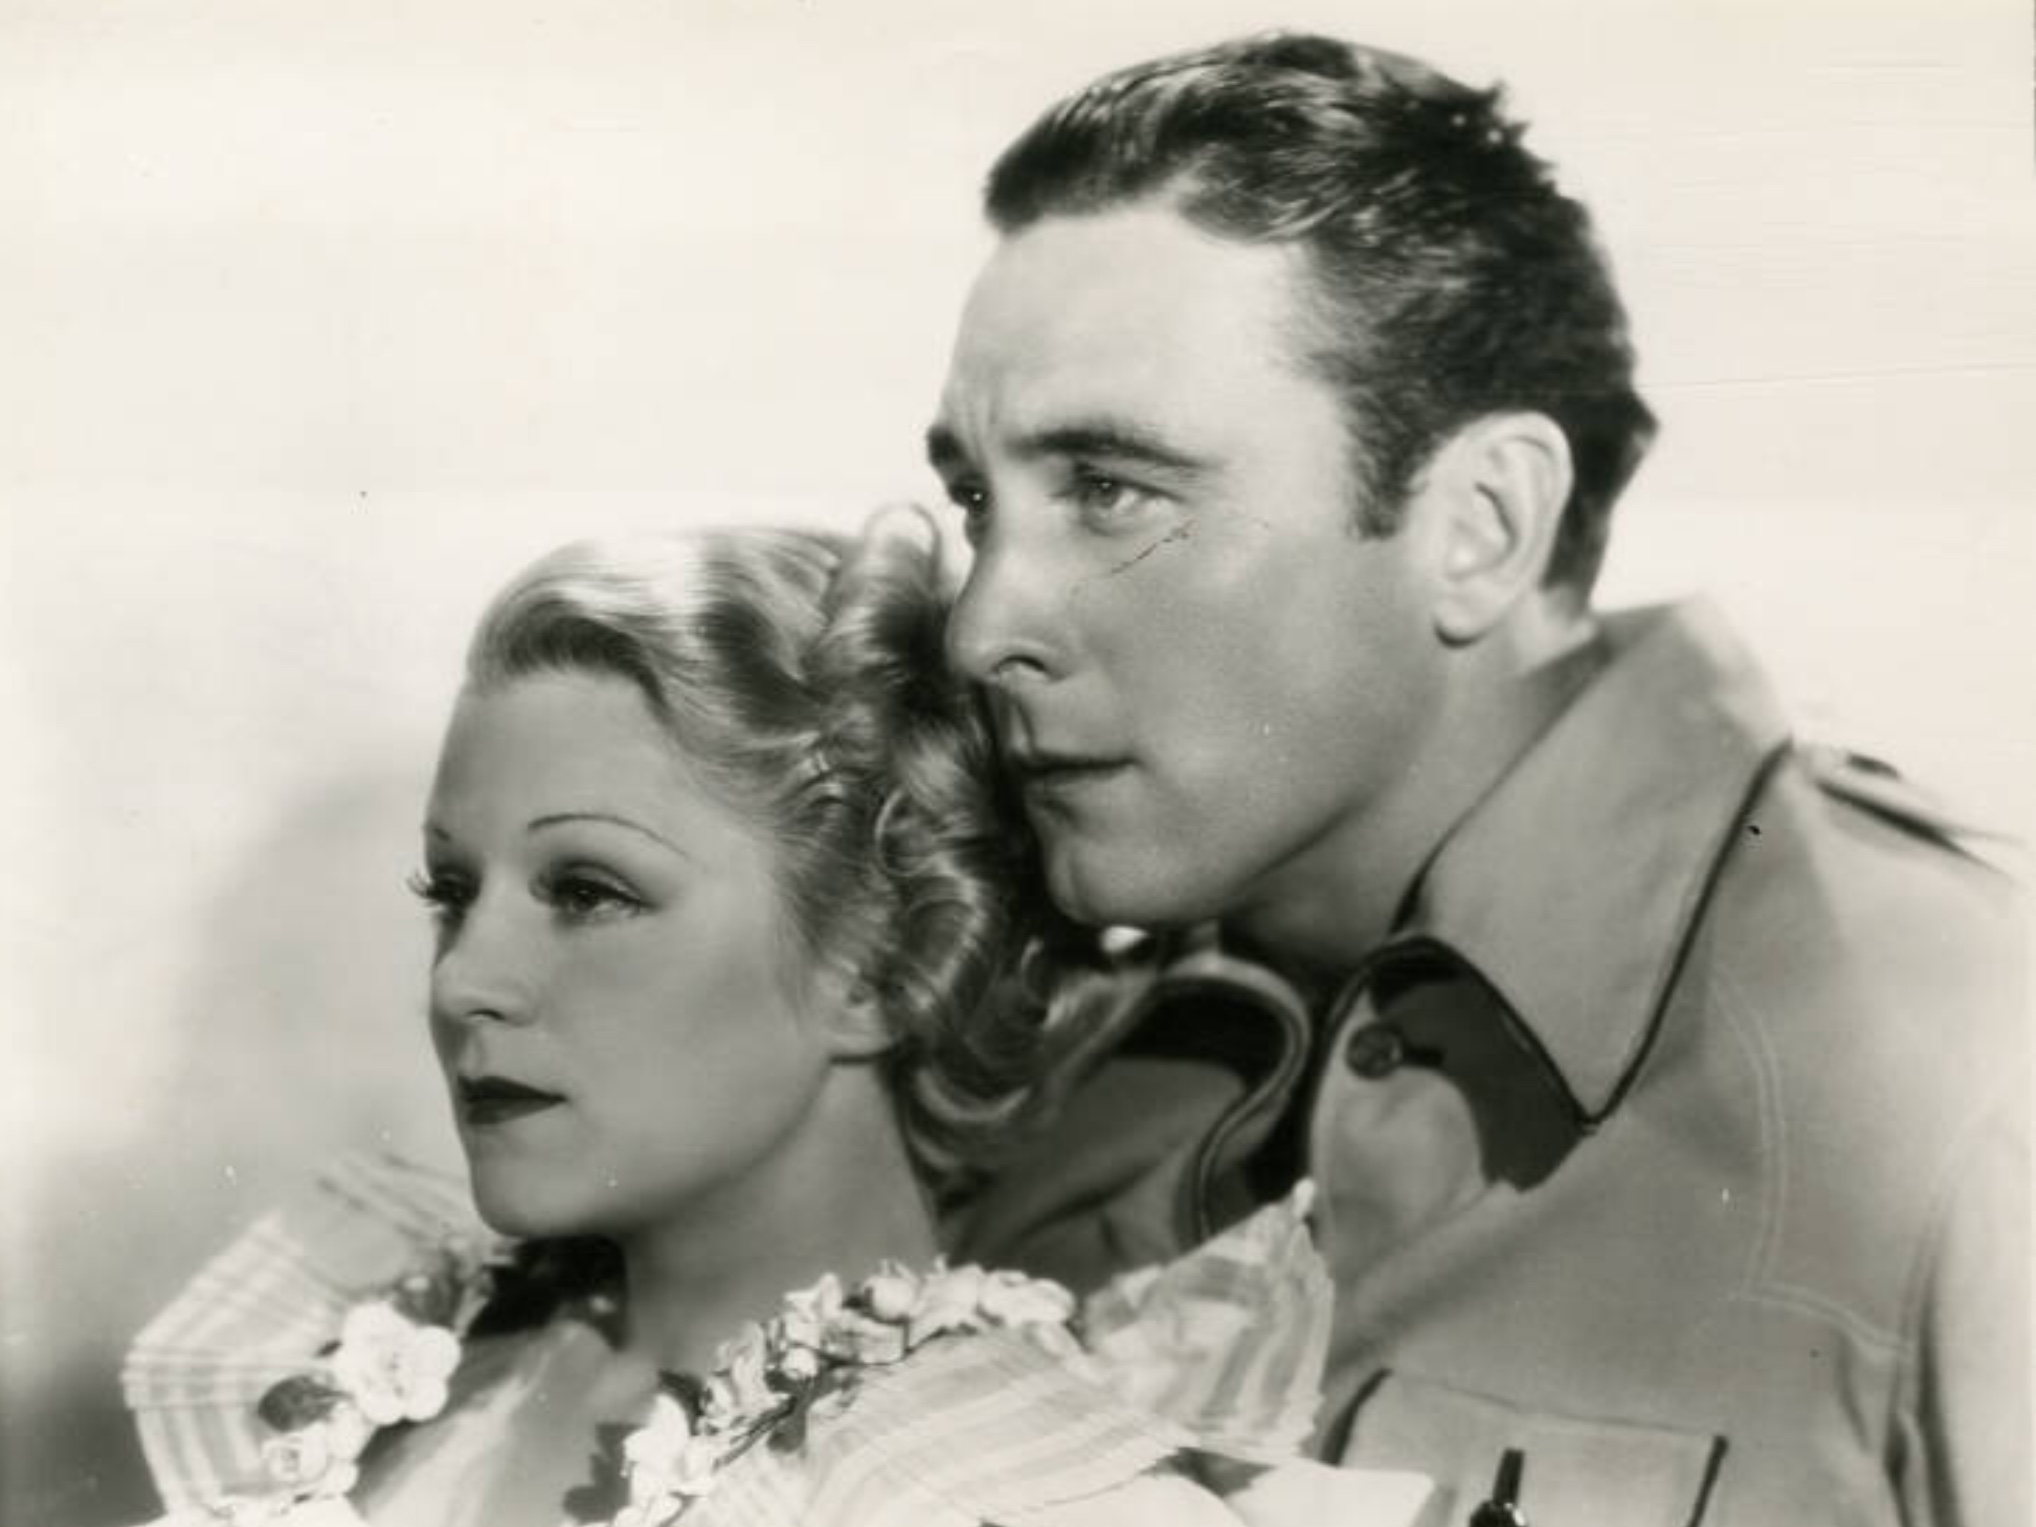 George O'Brien and Claire Trevor in The Last Trail (1933)